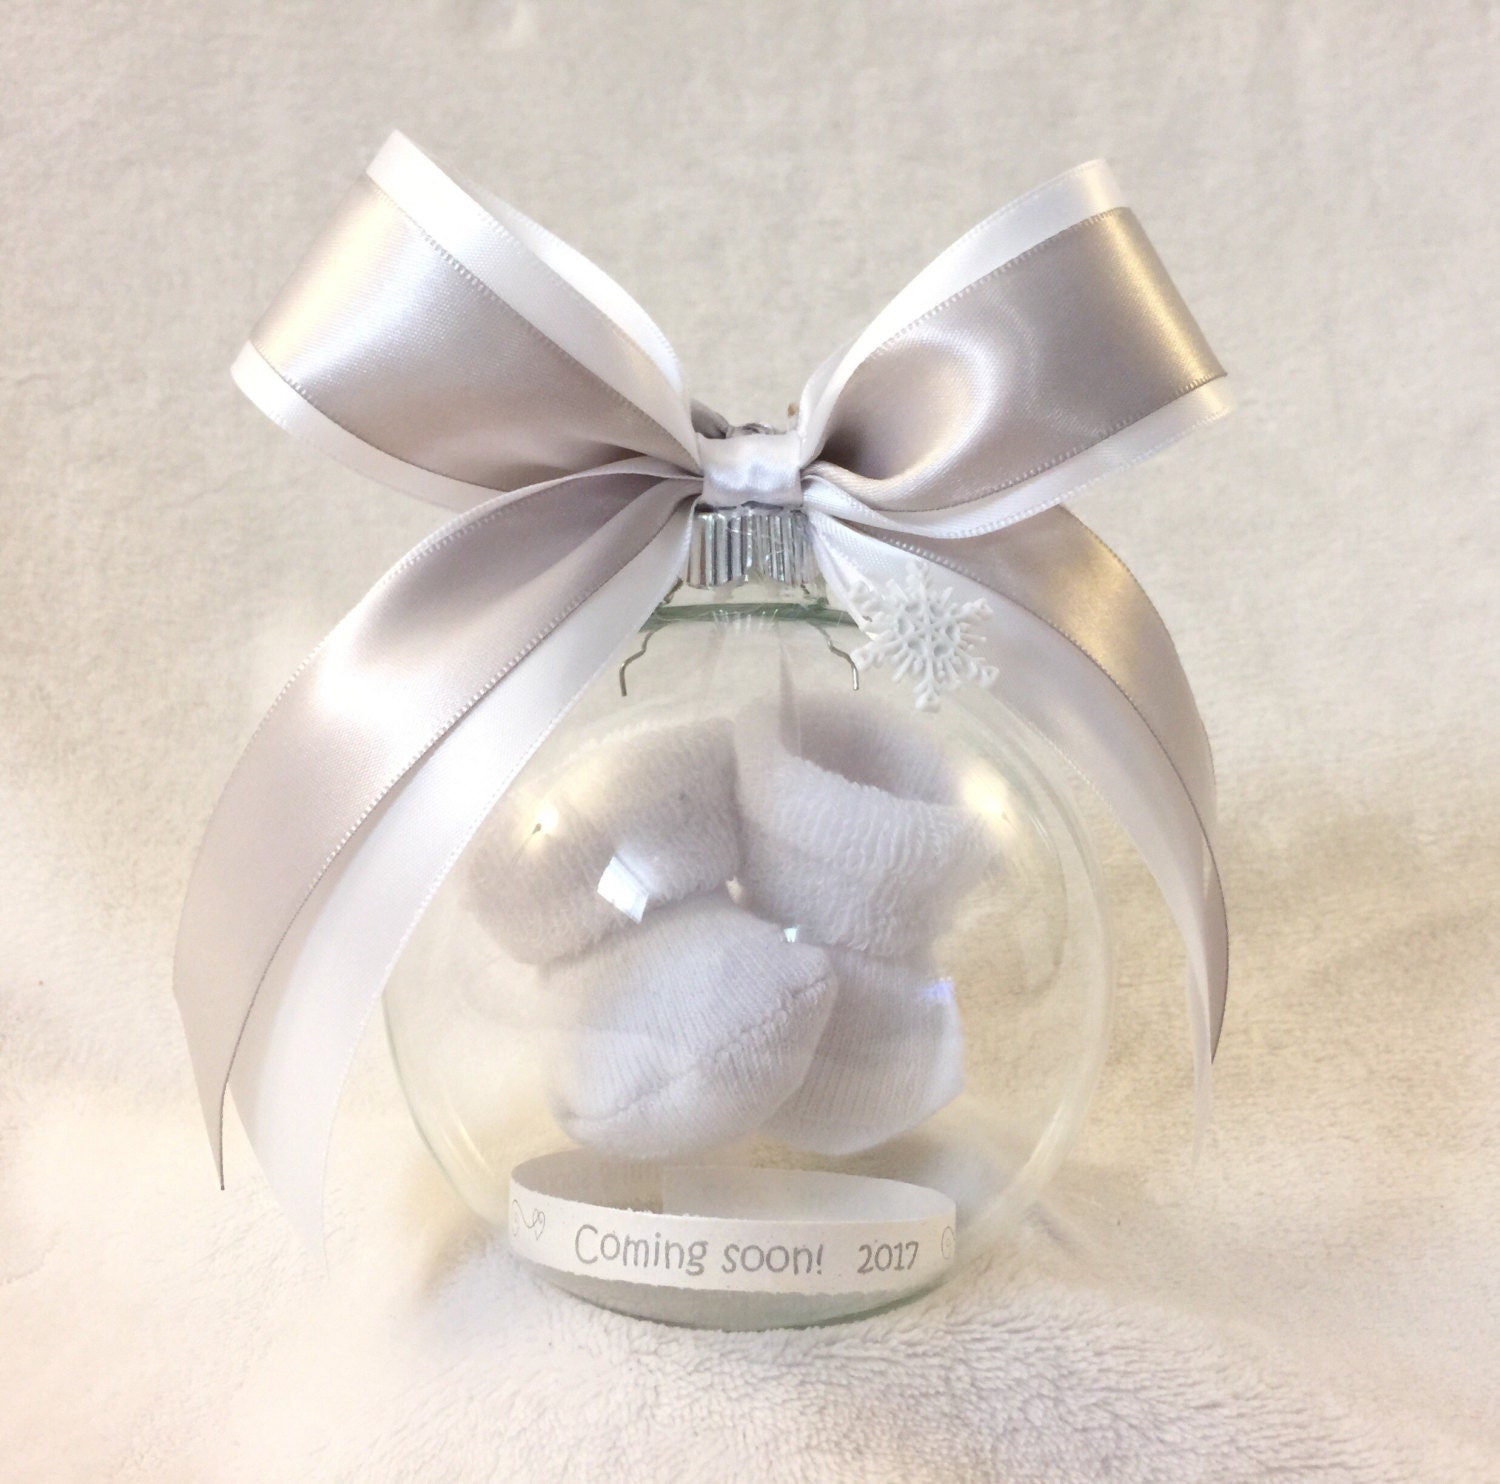 Baby ornament - Pregnancy Announcement Gender Reveal Ball Ornament With Floating Baby Booties